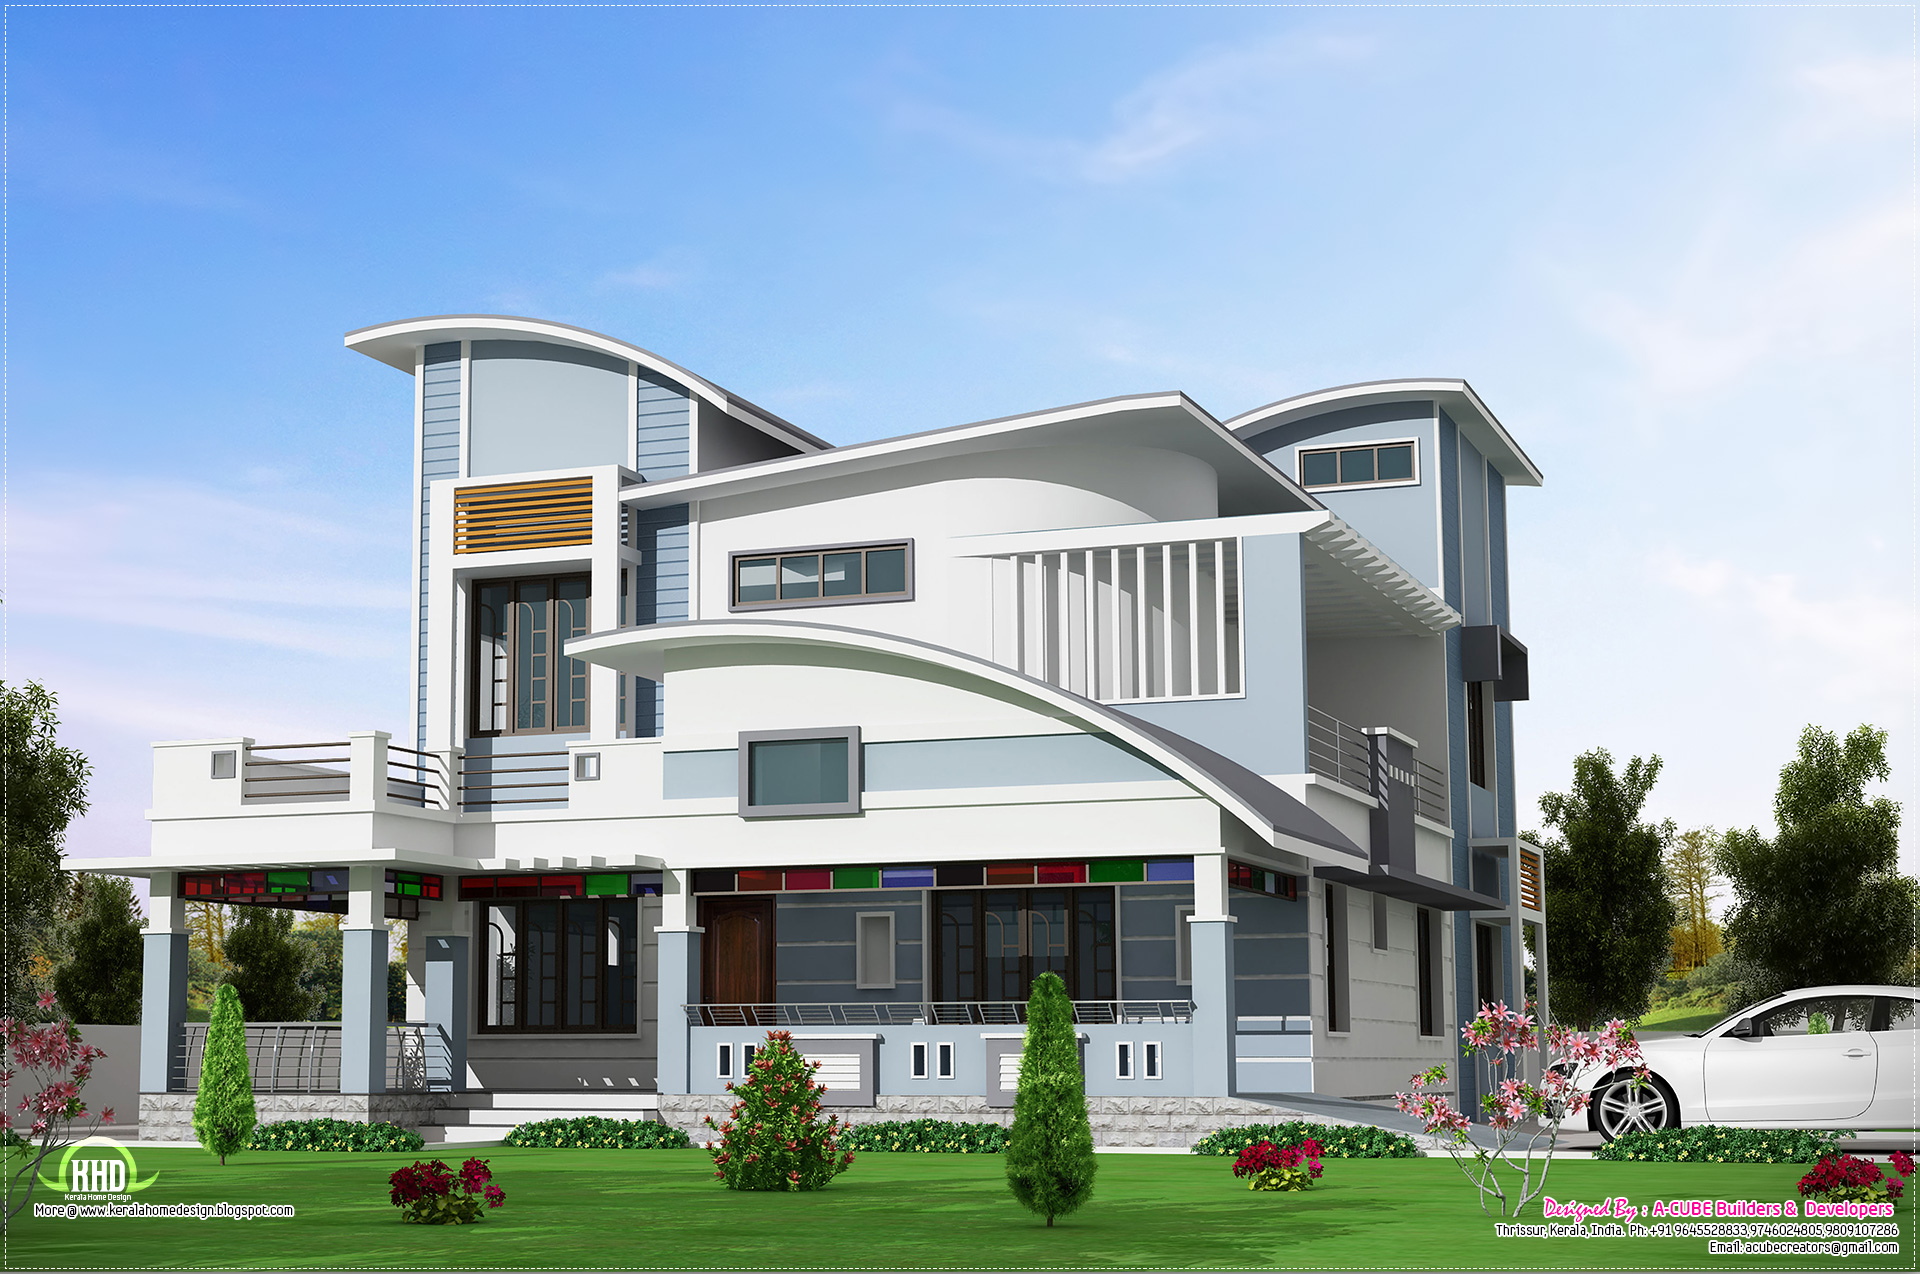 Modern unique style villa design kerala home design and for Villa house plans